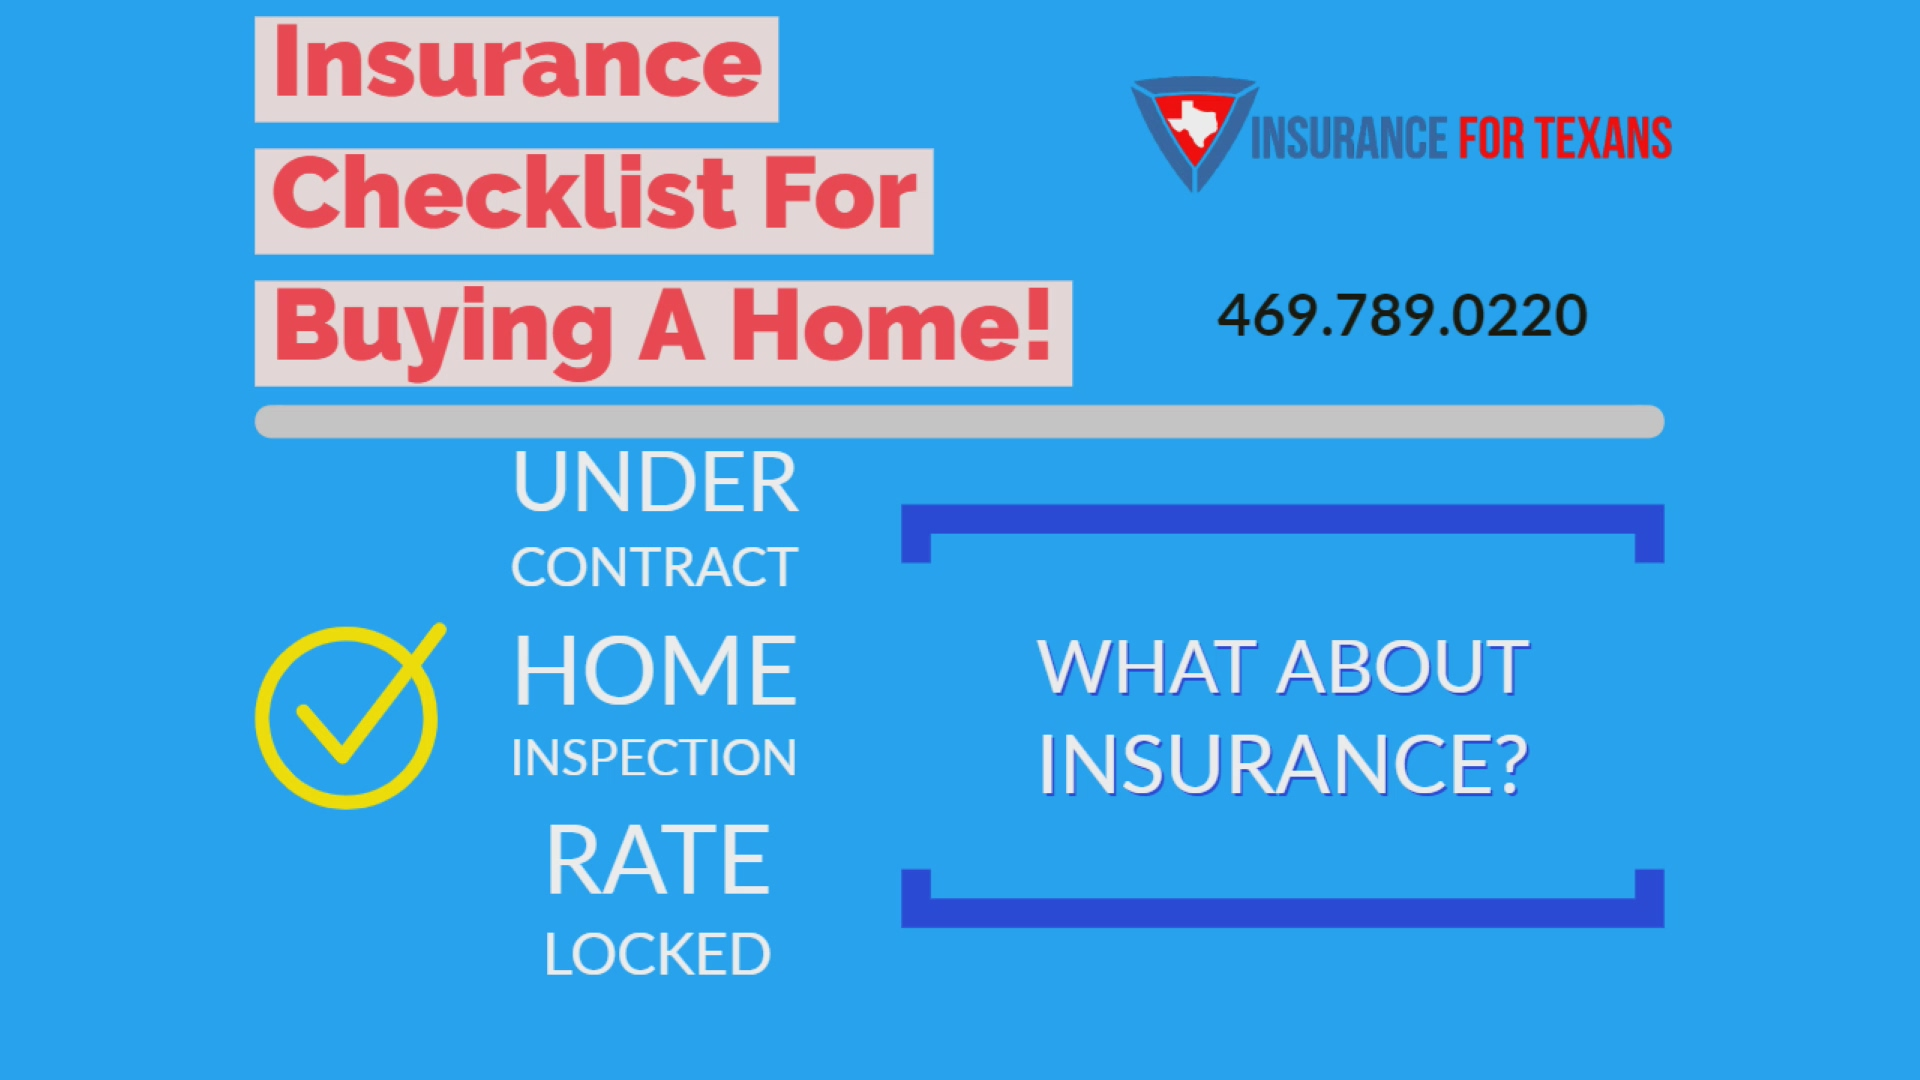 Buying A Home? Here's a Home Insurance Guide!